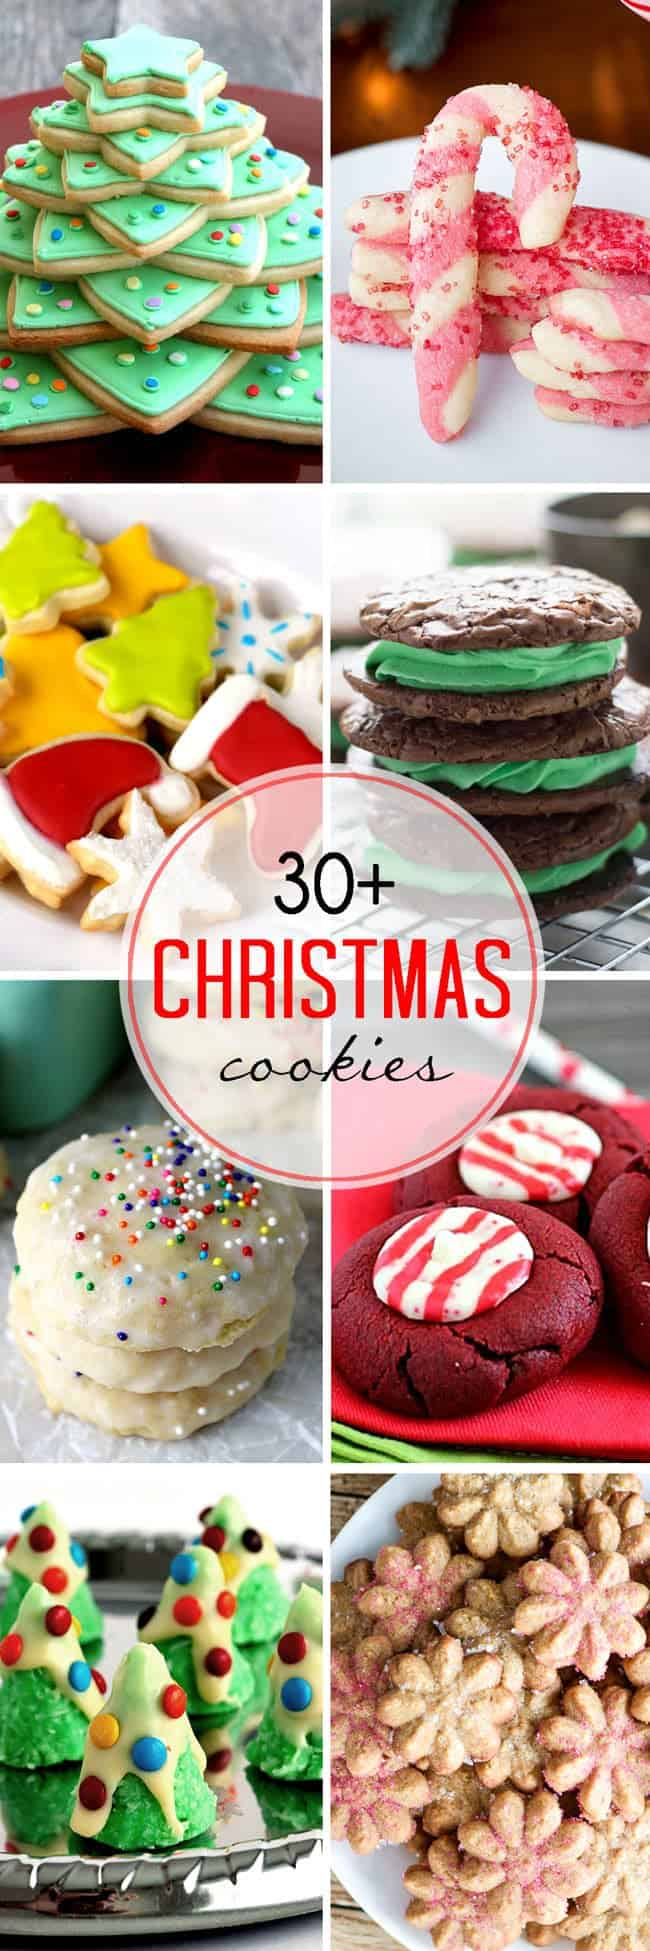 Over 30 of the best Christmas Cookies from your favorite food bloggers!